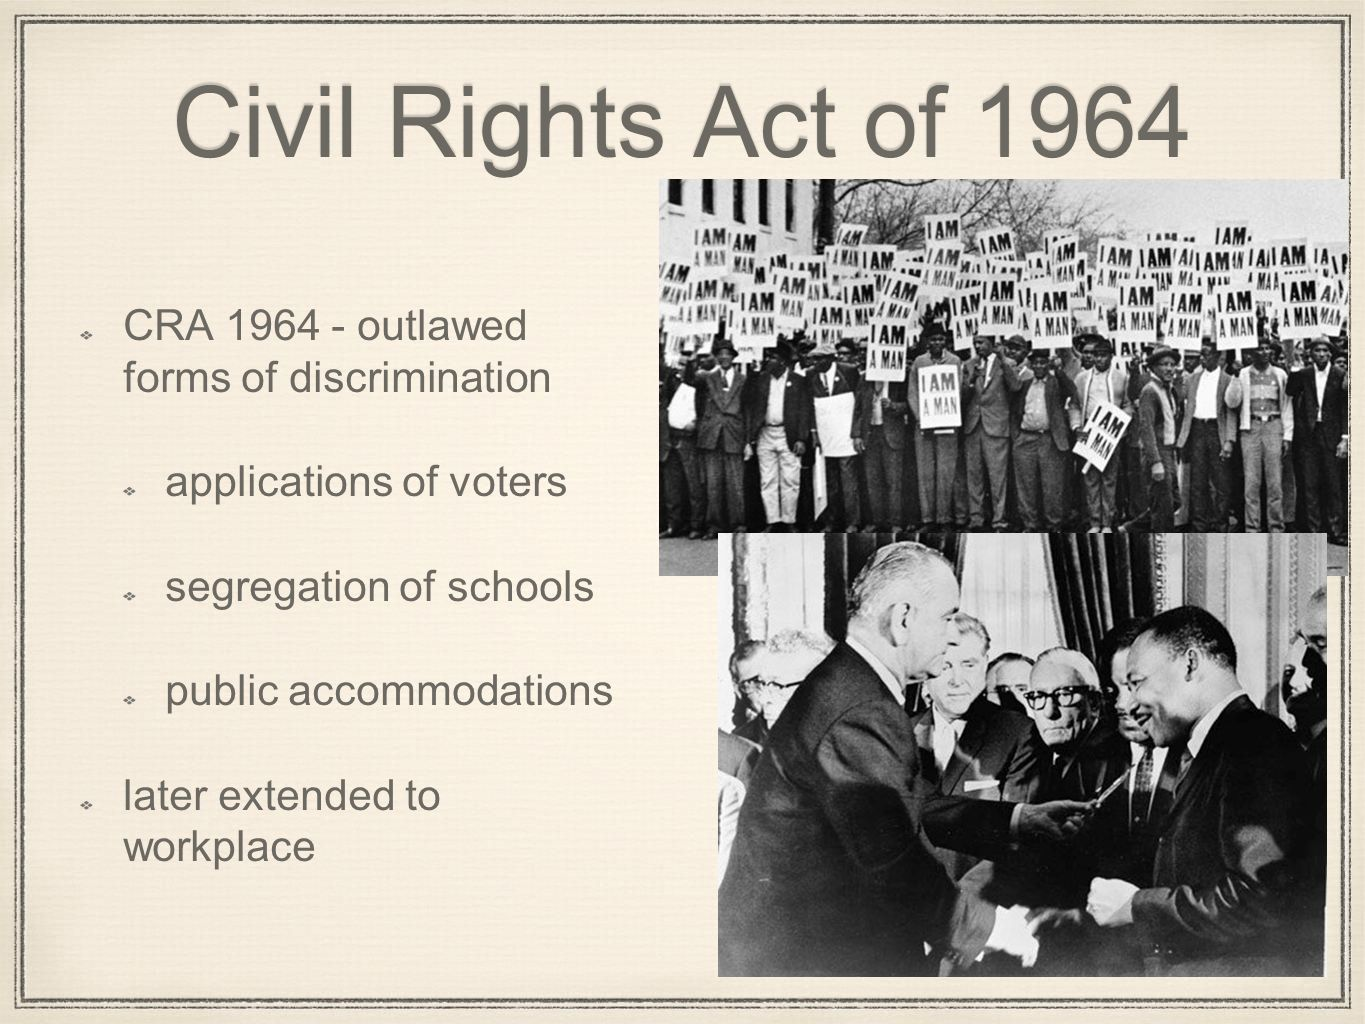 methods used in the civil rights The civil rights movement was a mass popular movement to secure for african americans equal access to and opportunities for the basic privileges and rights of us citizenship although the roots of the movement go back to the 19th century, it peaked in the 1950s and 1960s african american men and.